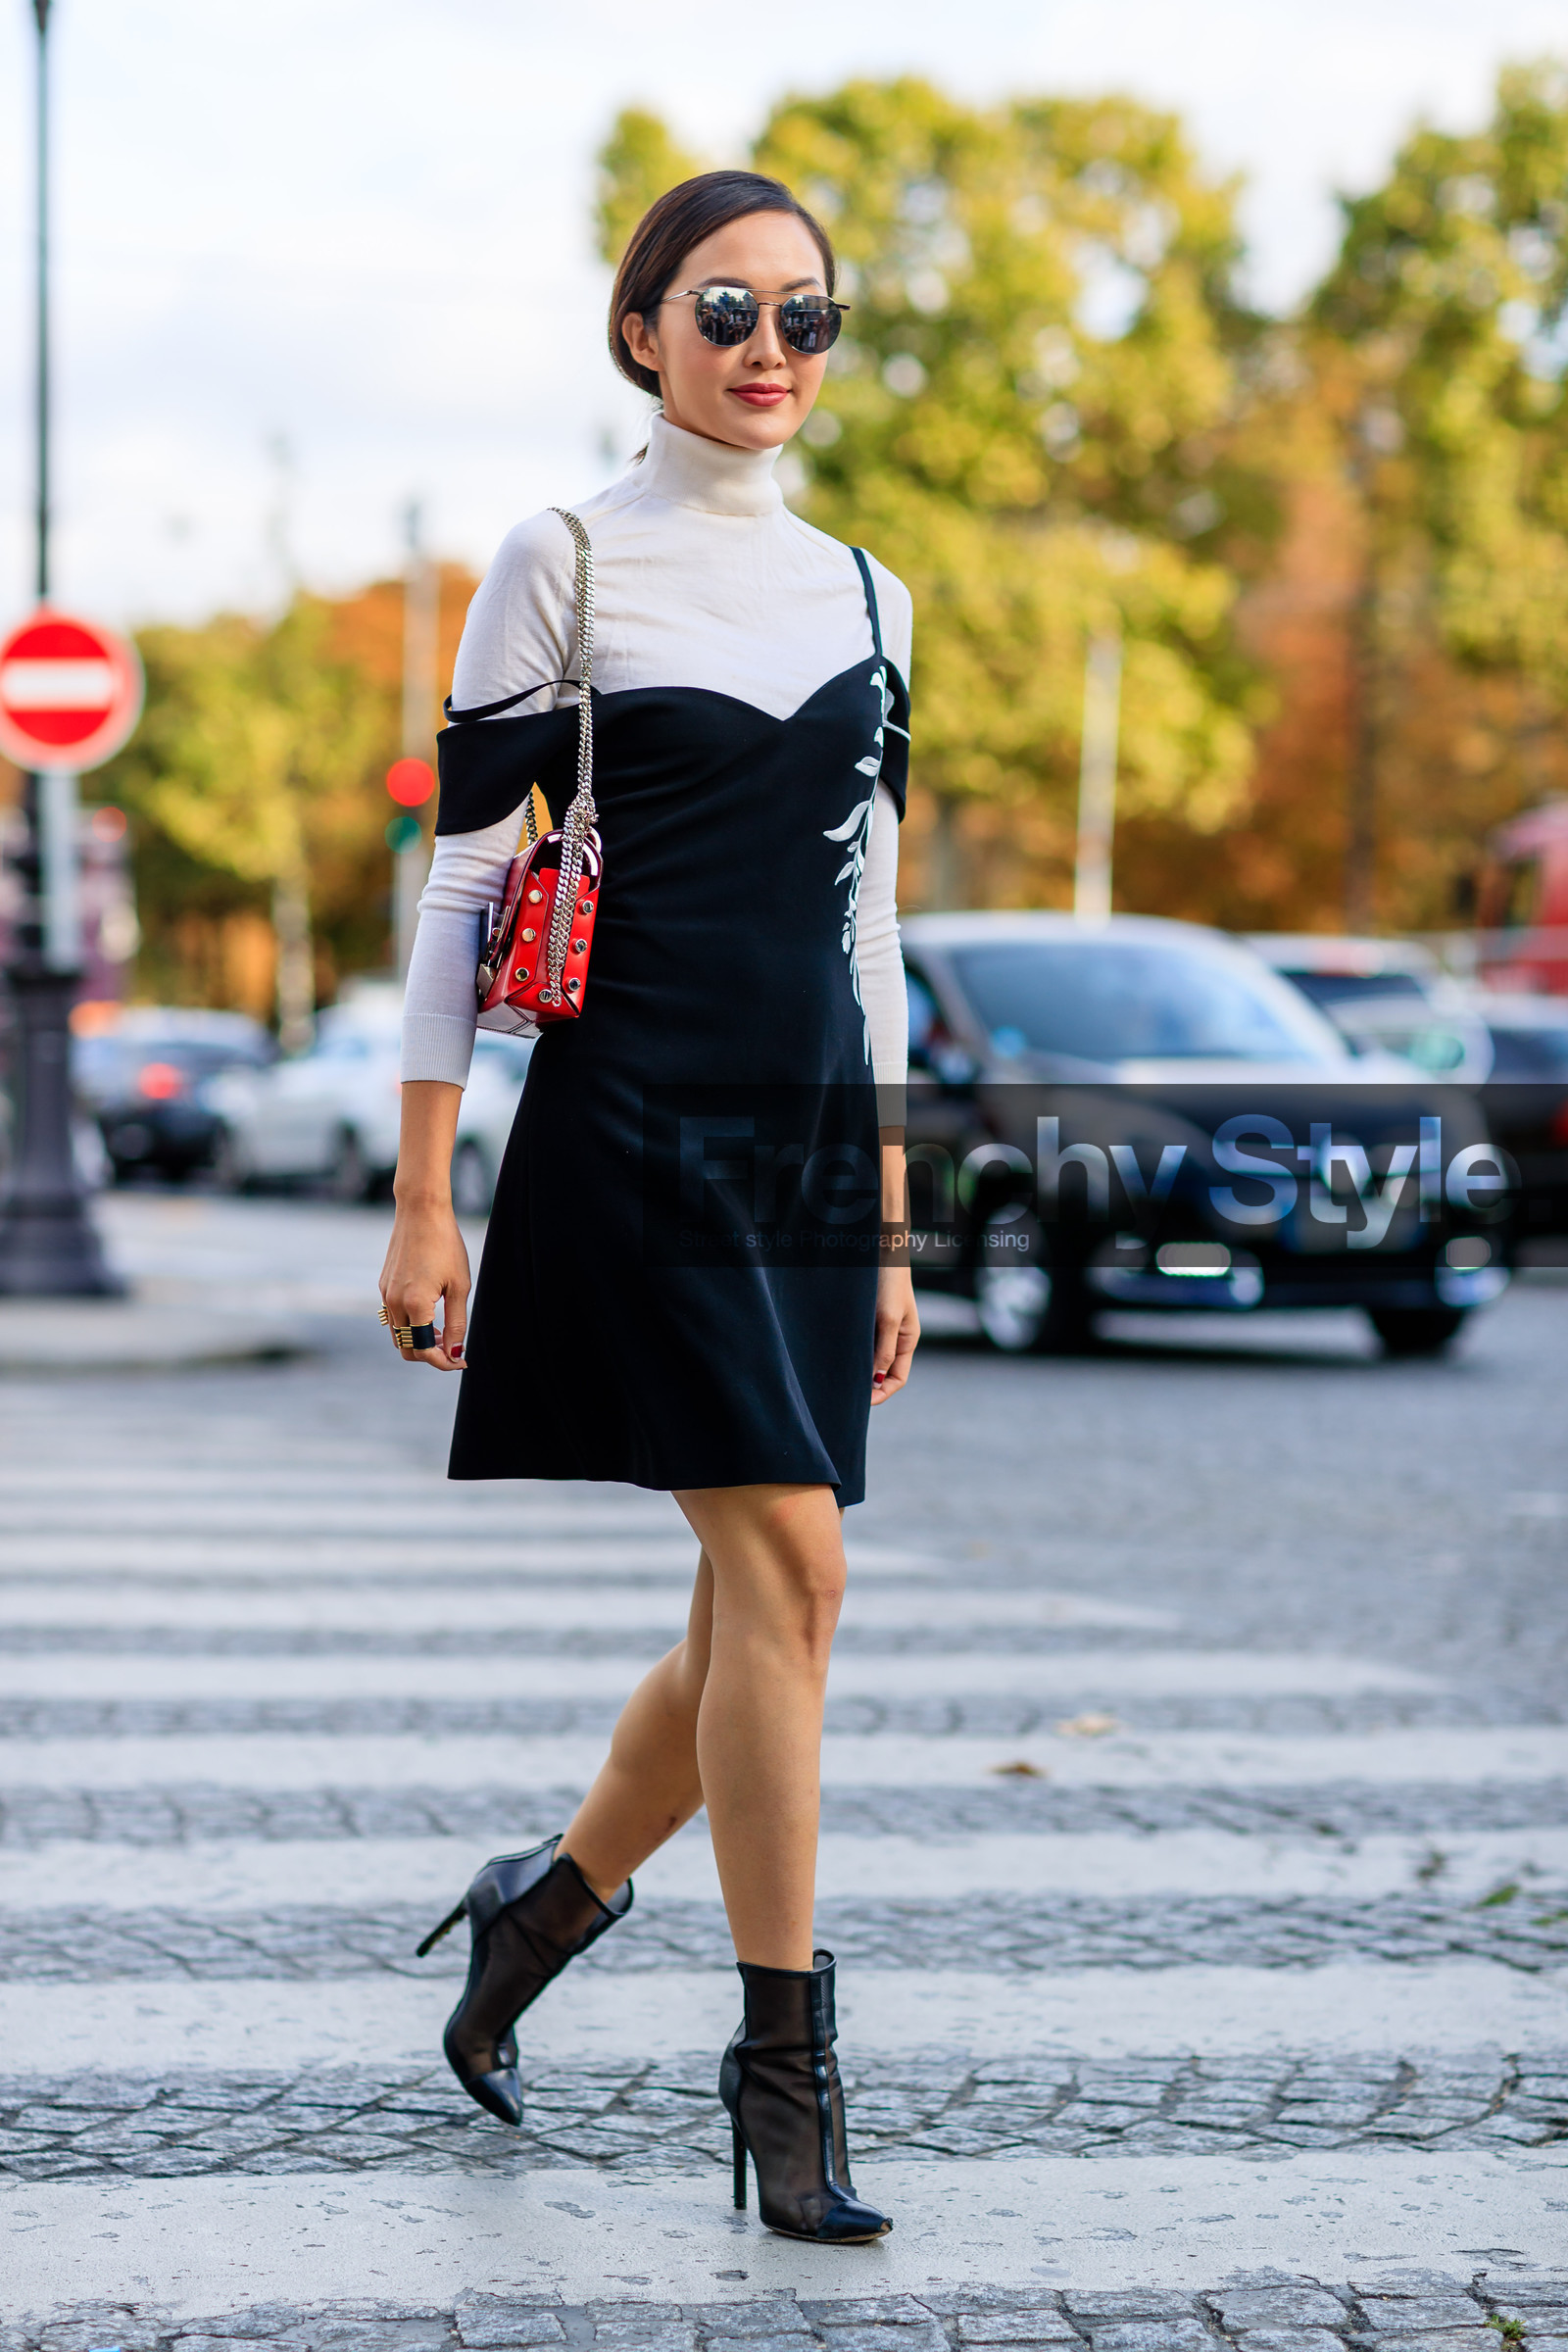 Black dress with red bag - Black Boots Black Dress Chriselle Lim Fashion Week Frenchystyle Full Length